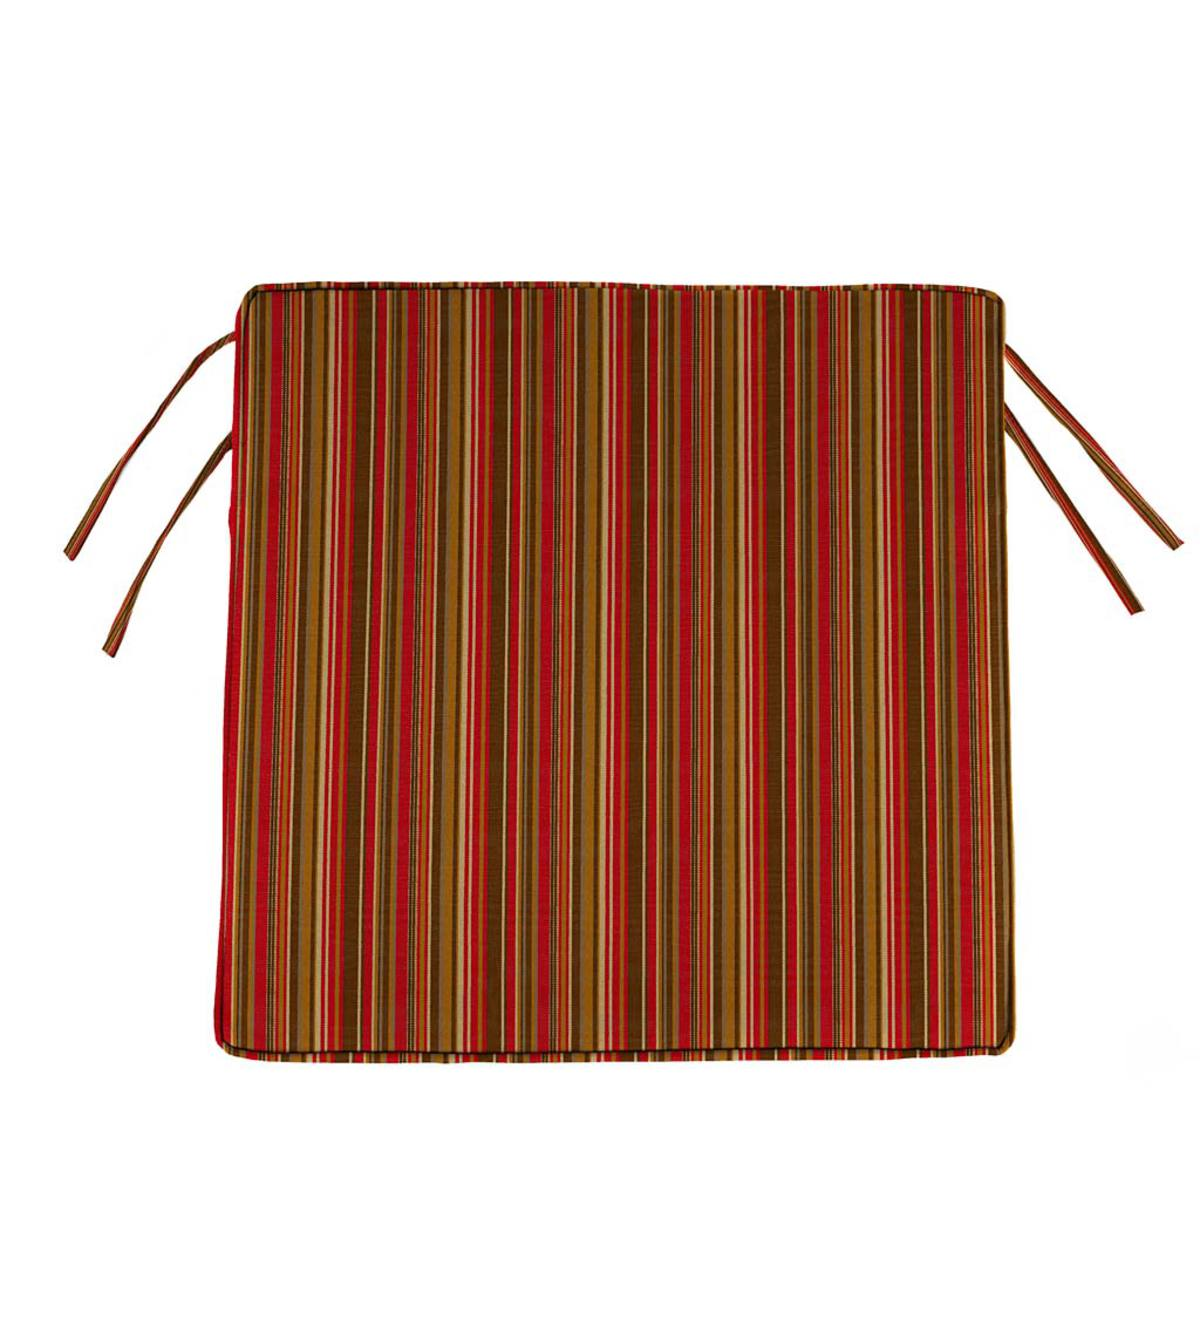 "Sunbrella Classic Chair Cushion with Ties, 20¾"" x 20¼"" x 3"" - Cherry Stripe"